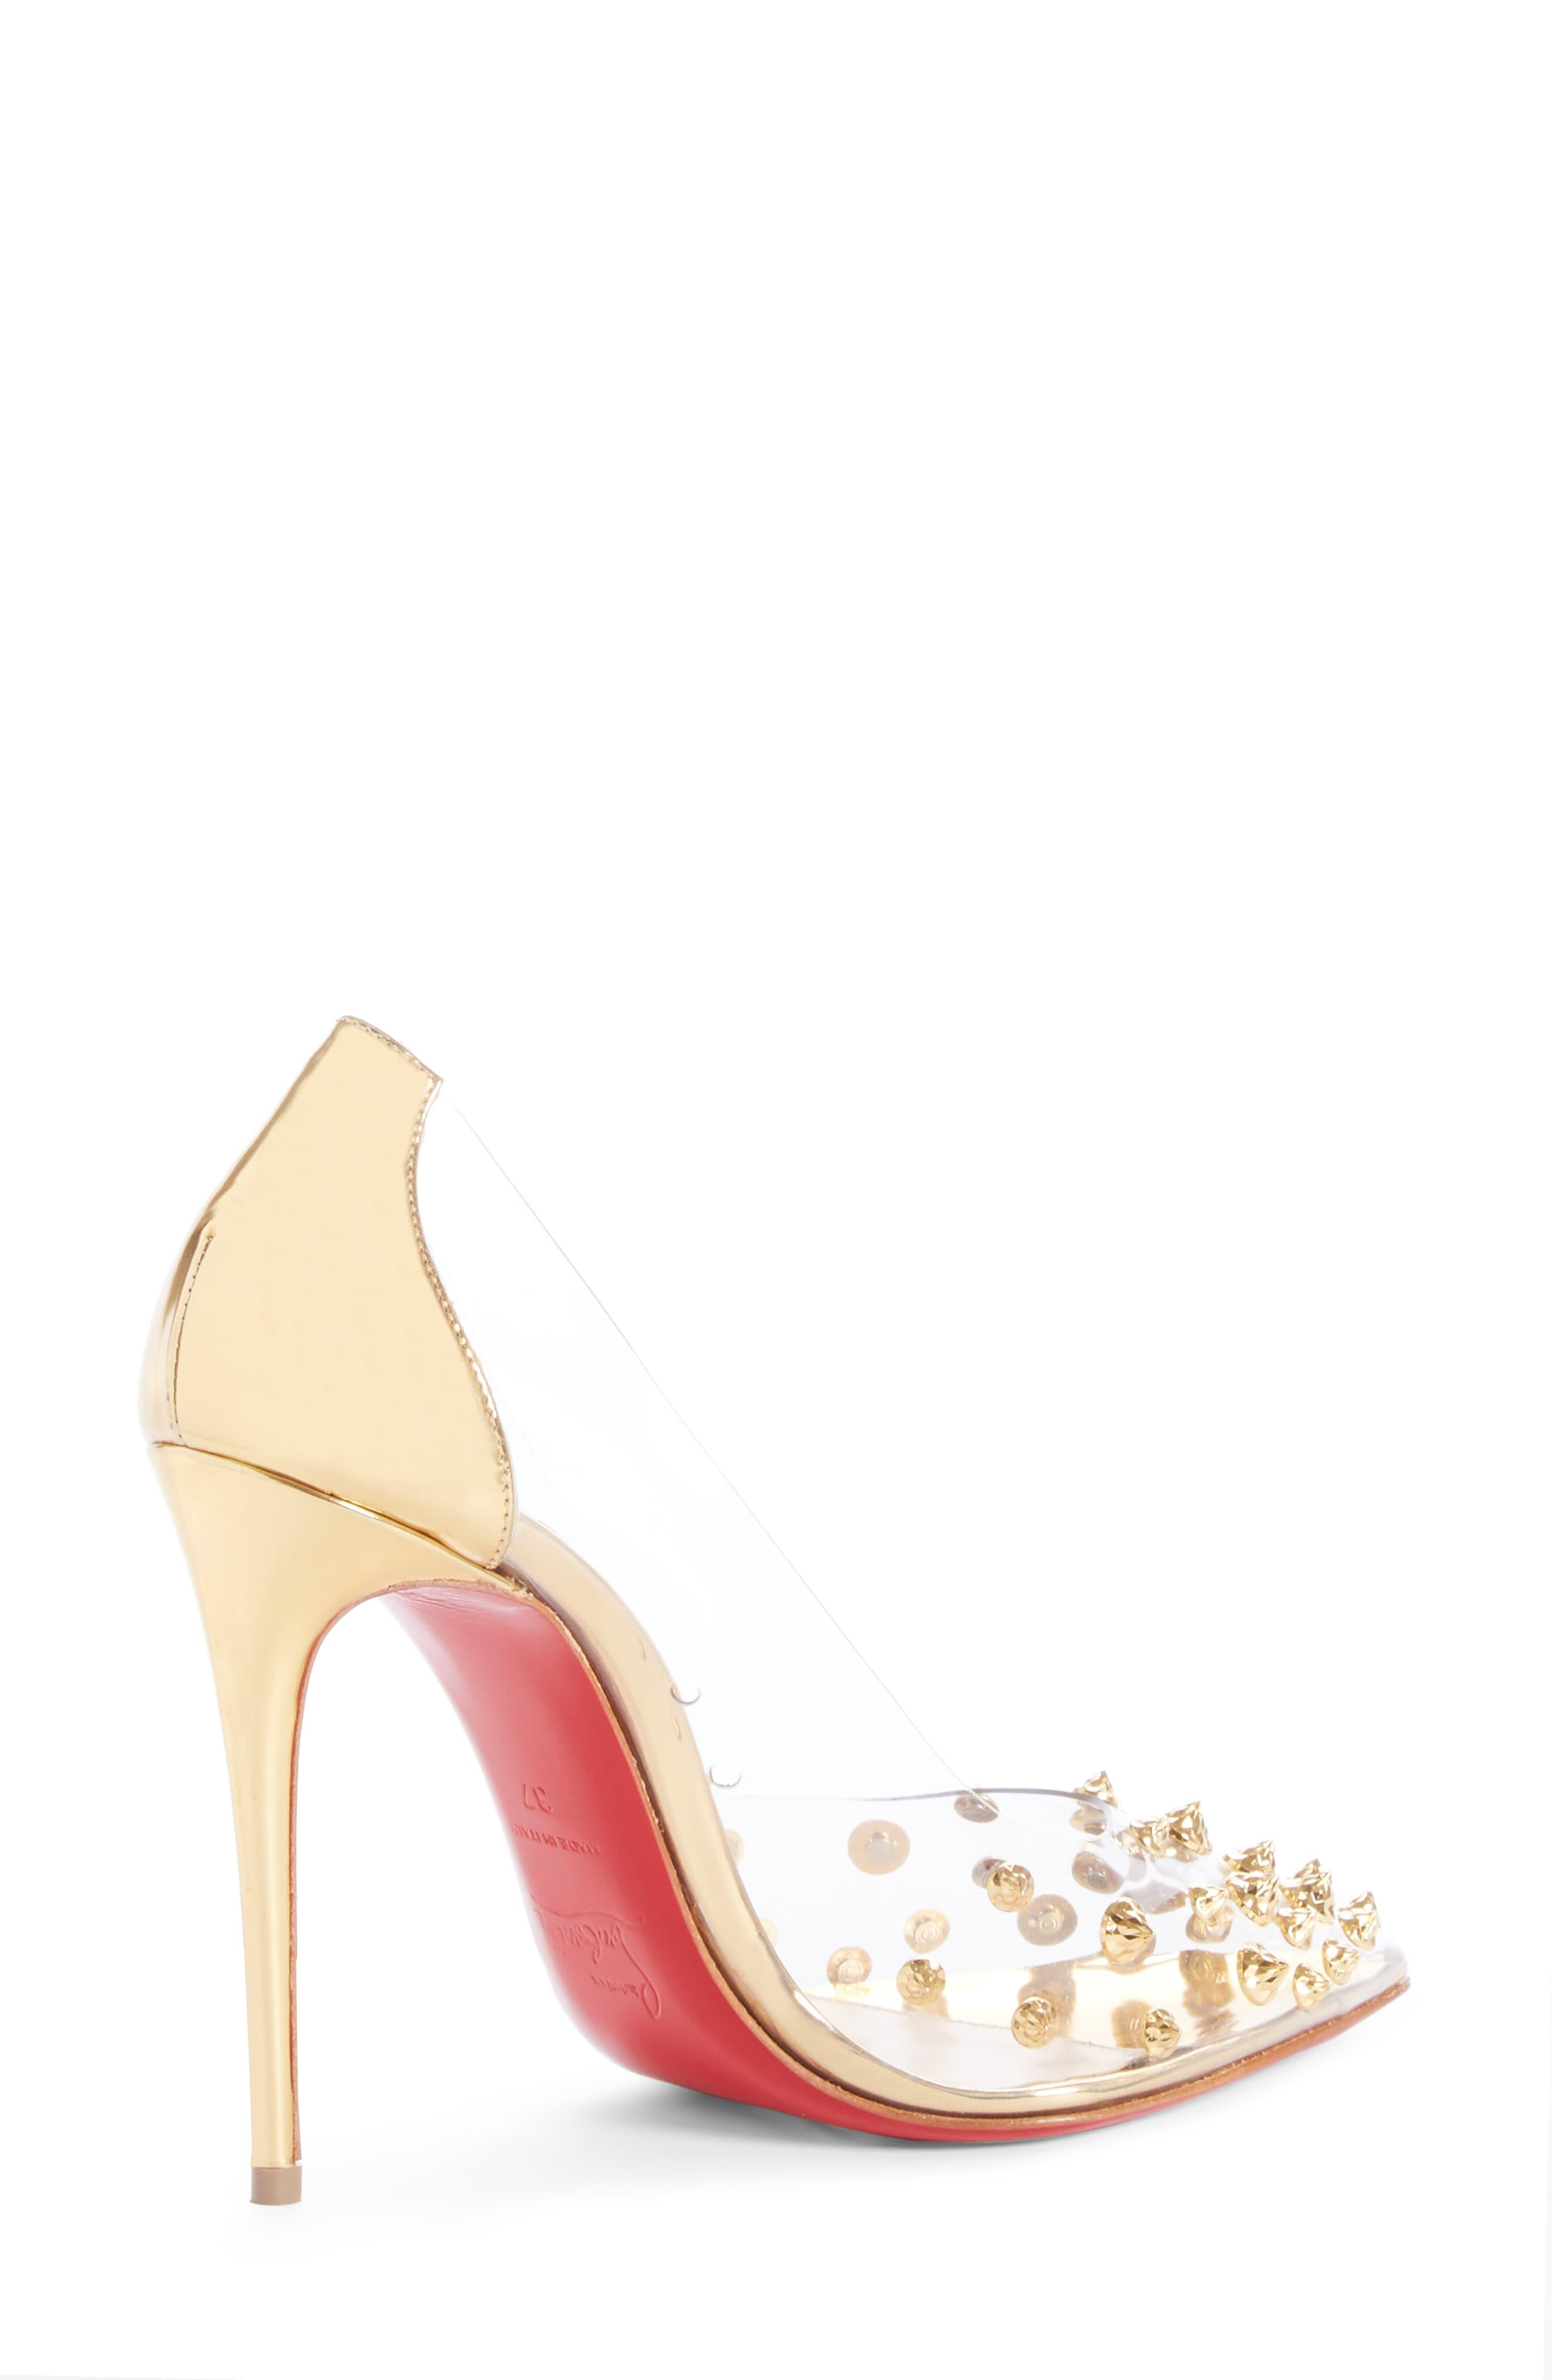 8cc0b5b7d6d Christian Louboutin Metallic Collaclou Spike Pump